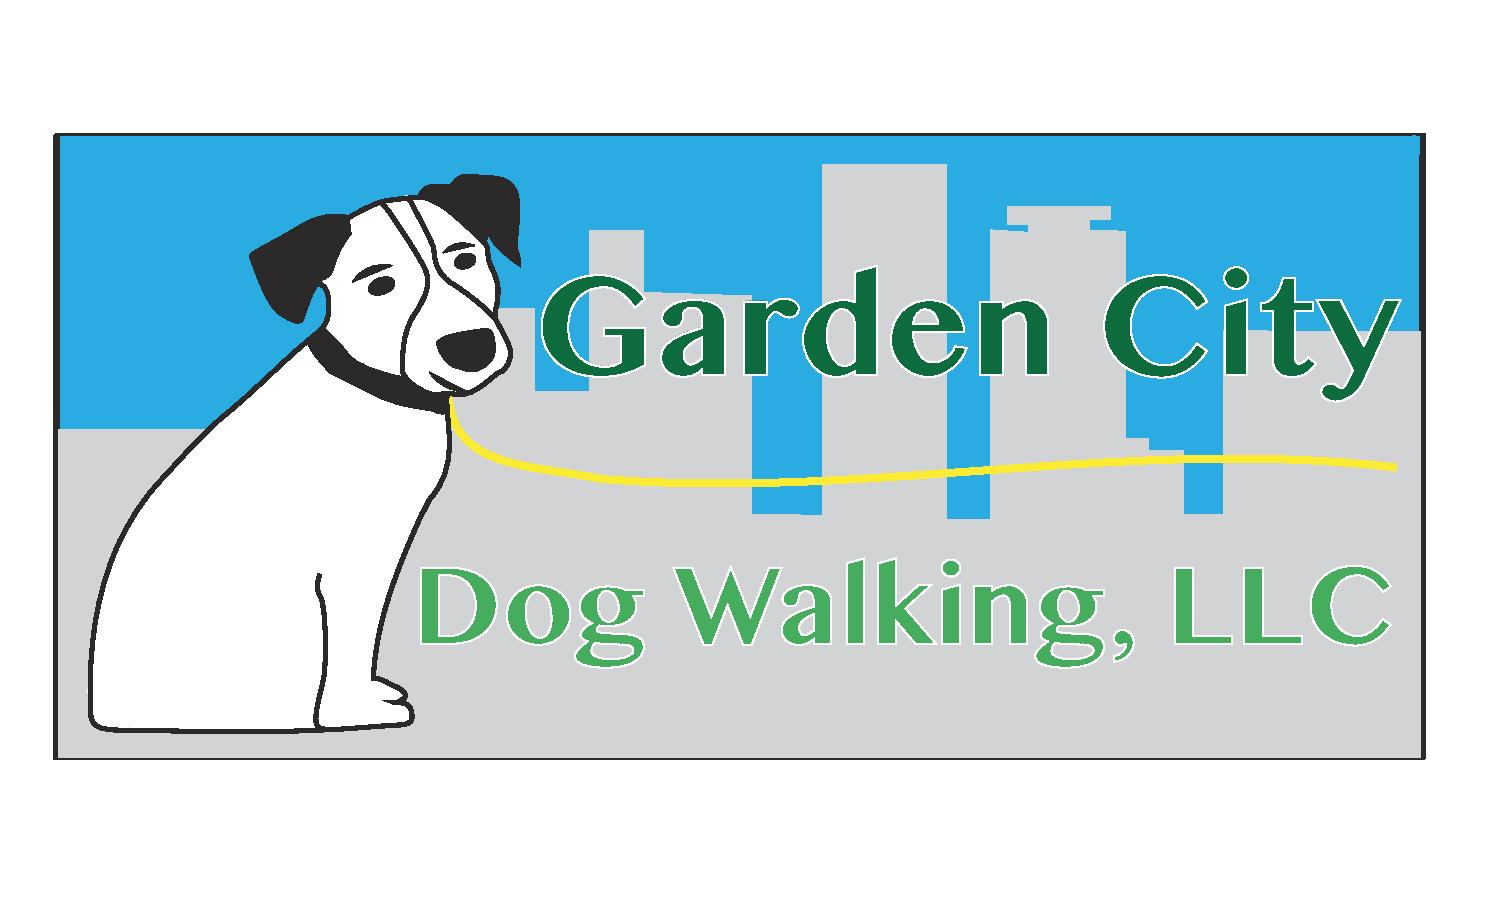 Garden city dog walking llc professional dog walking for Professional dog walker rates